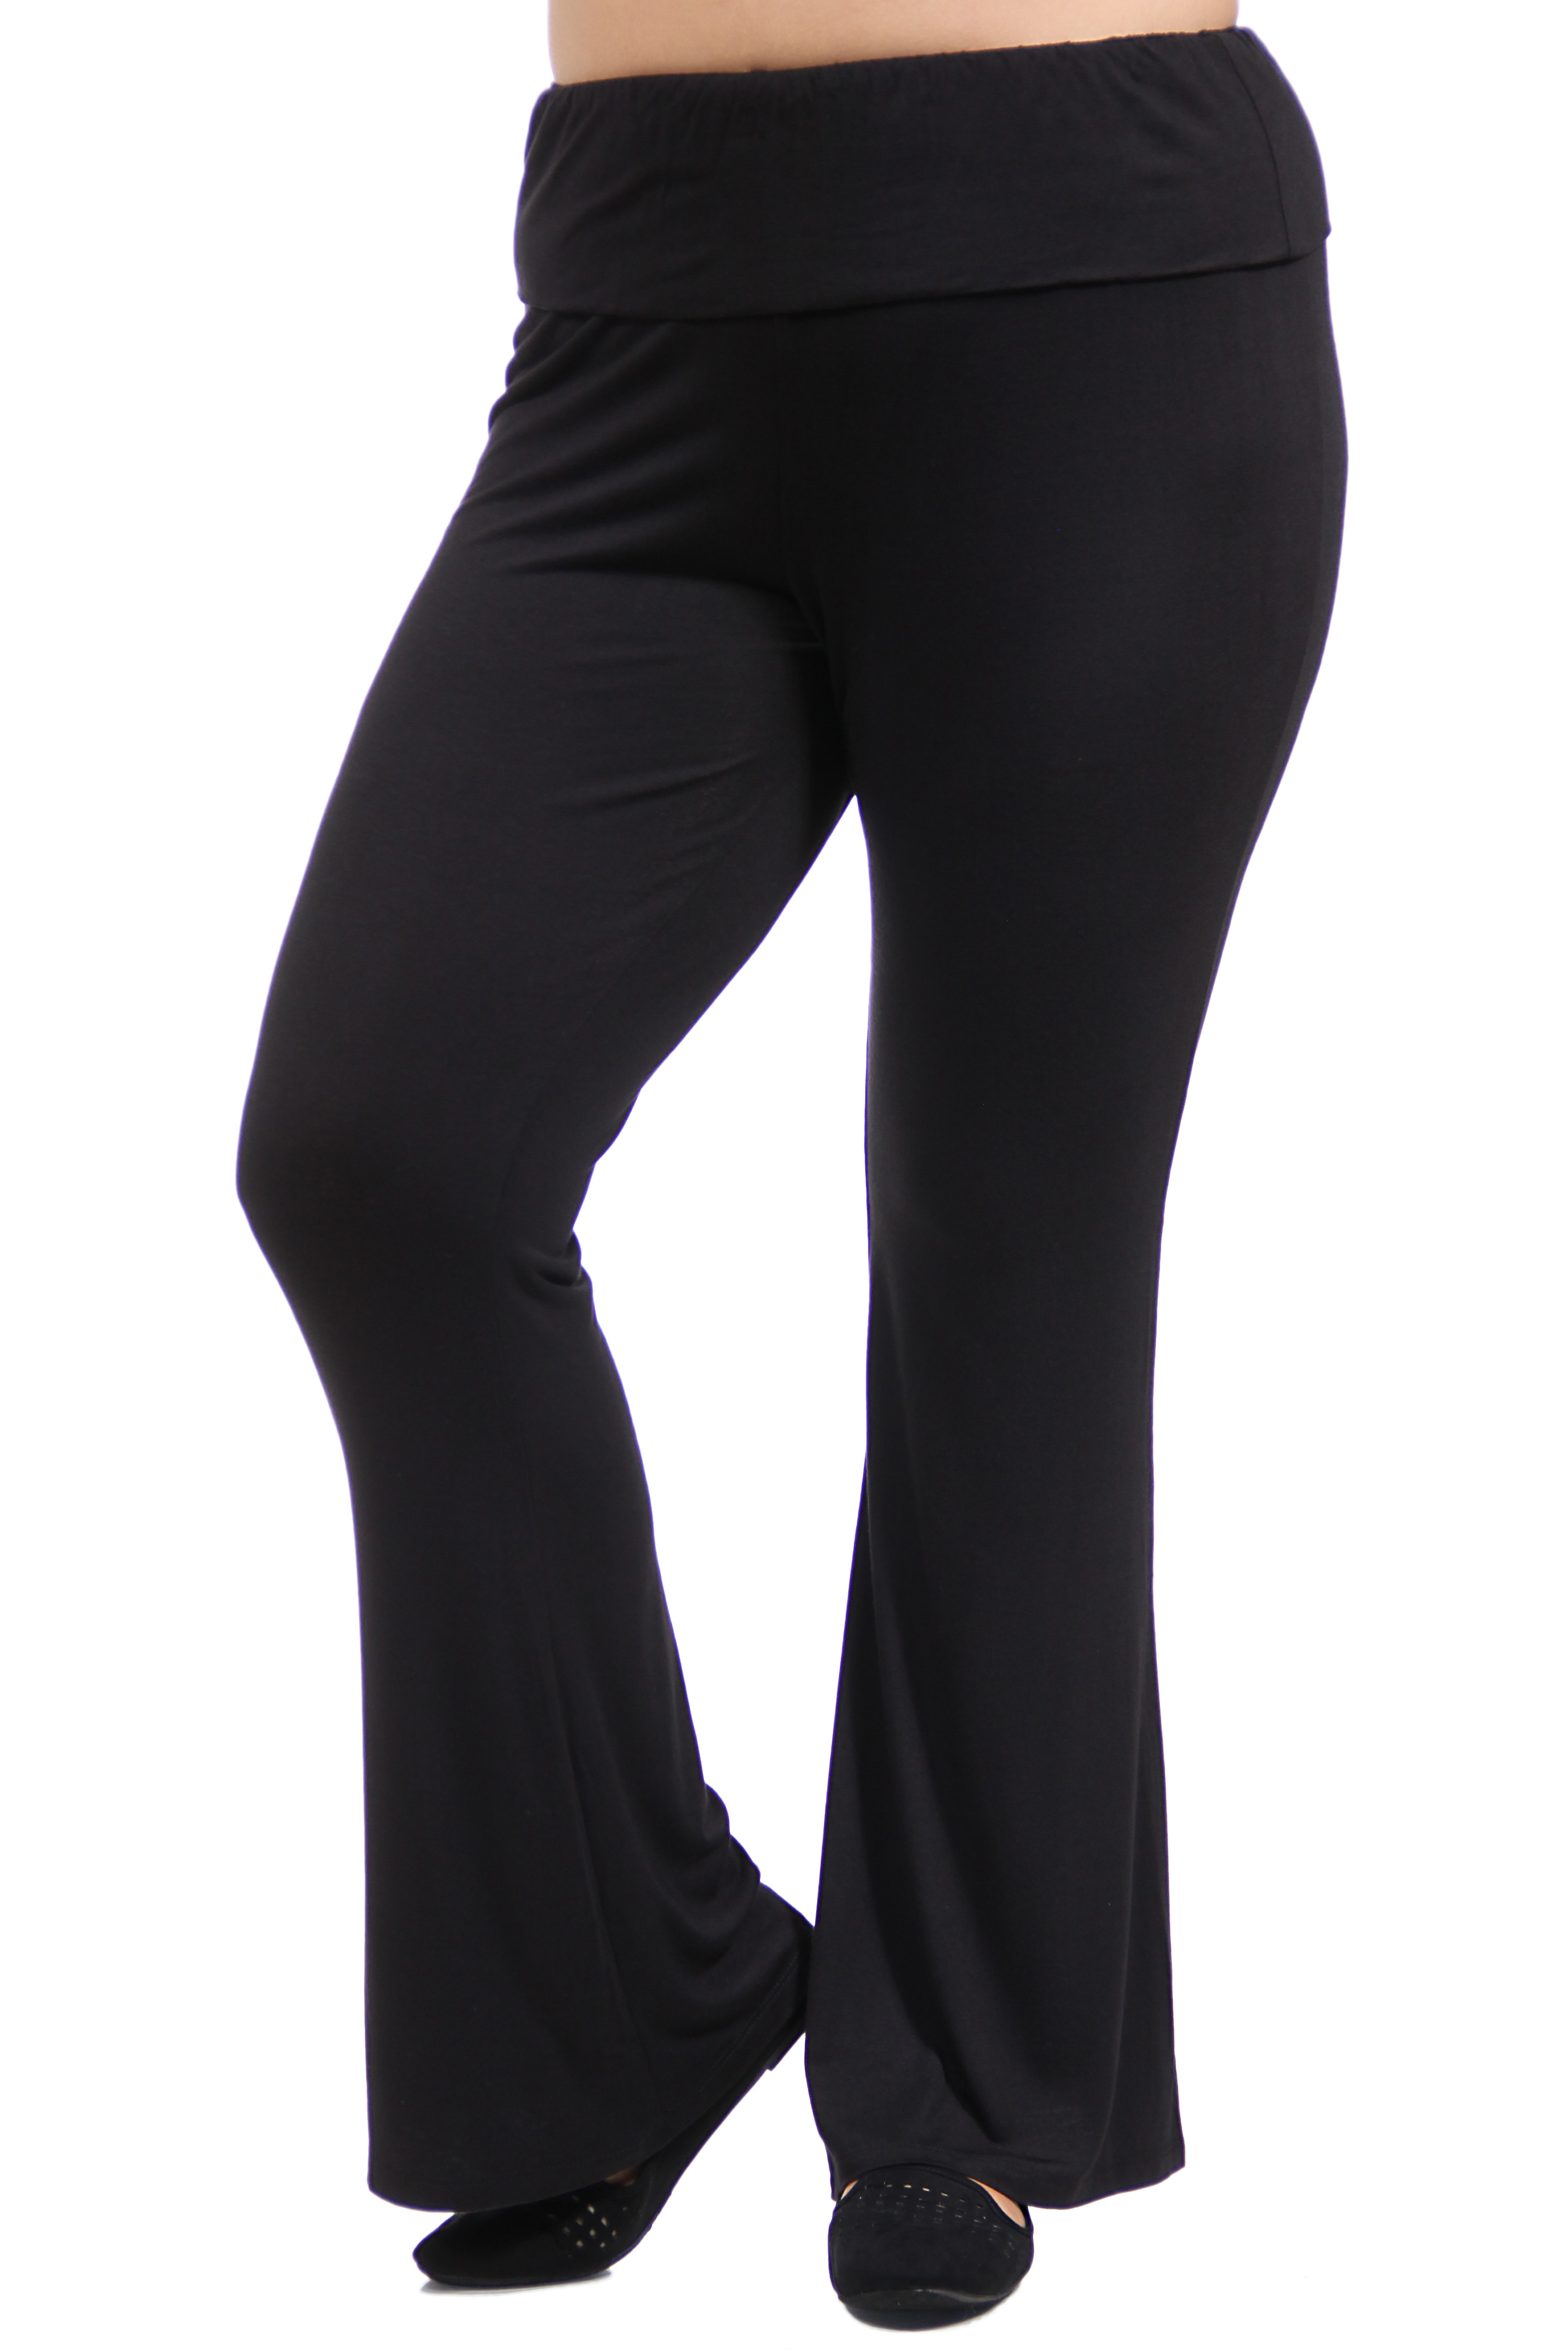 Twenty Four Seven Apparel Women's Plus Size Straight Leg Pant